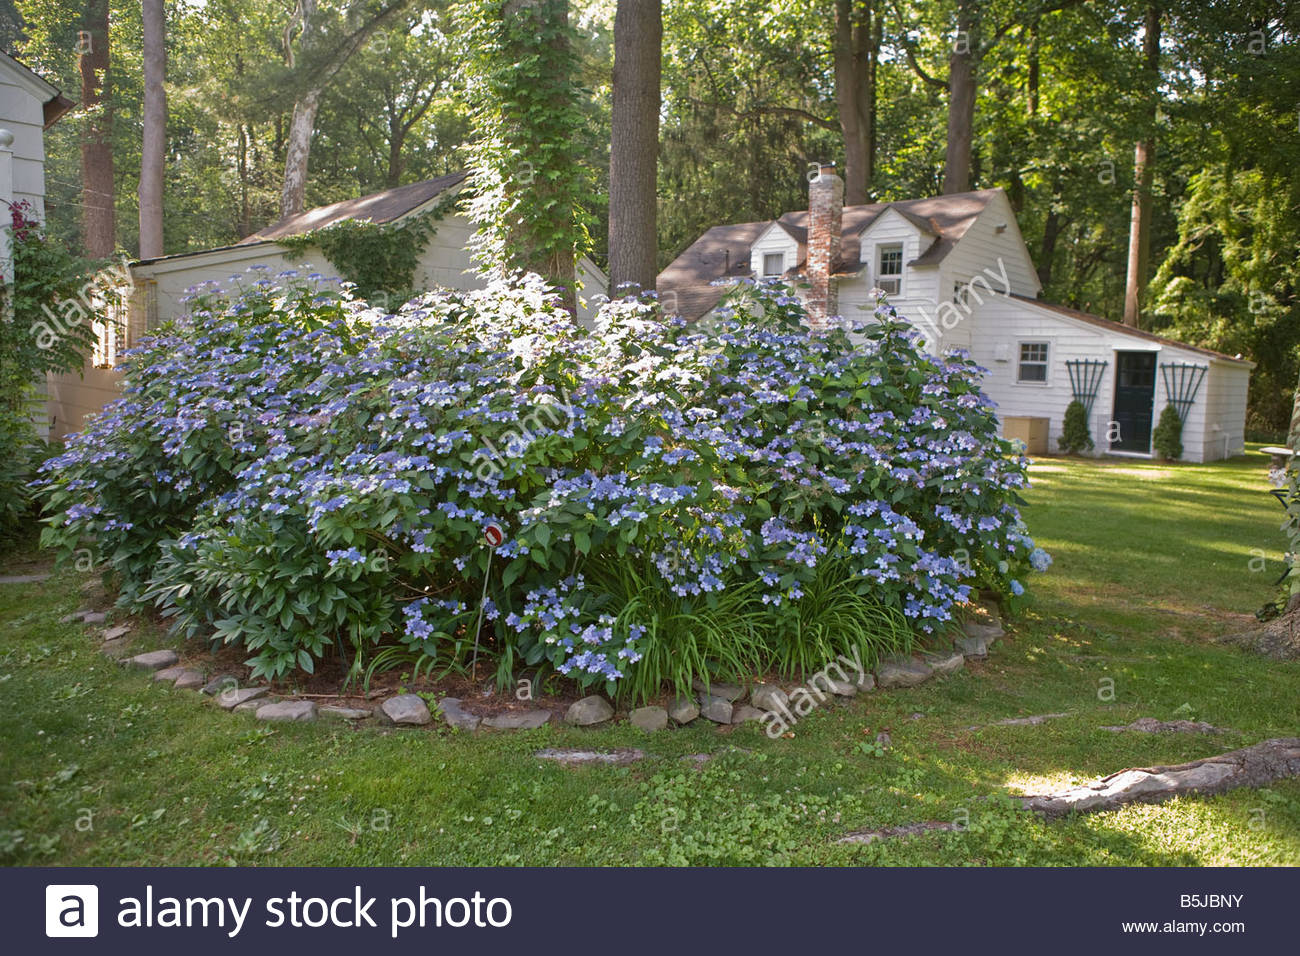 Blue flowering bush stock photos blue flowering bush stock images large blue flowering bush and out buildings stock image izmirmasajfo